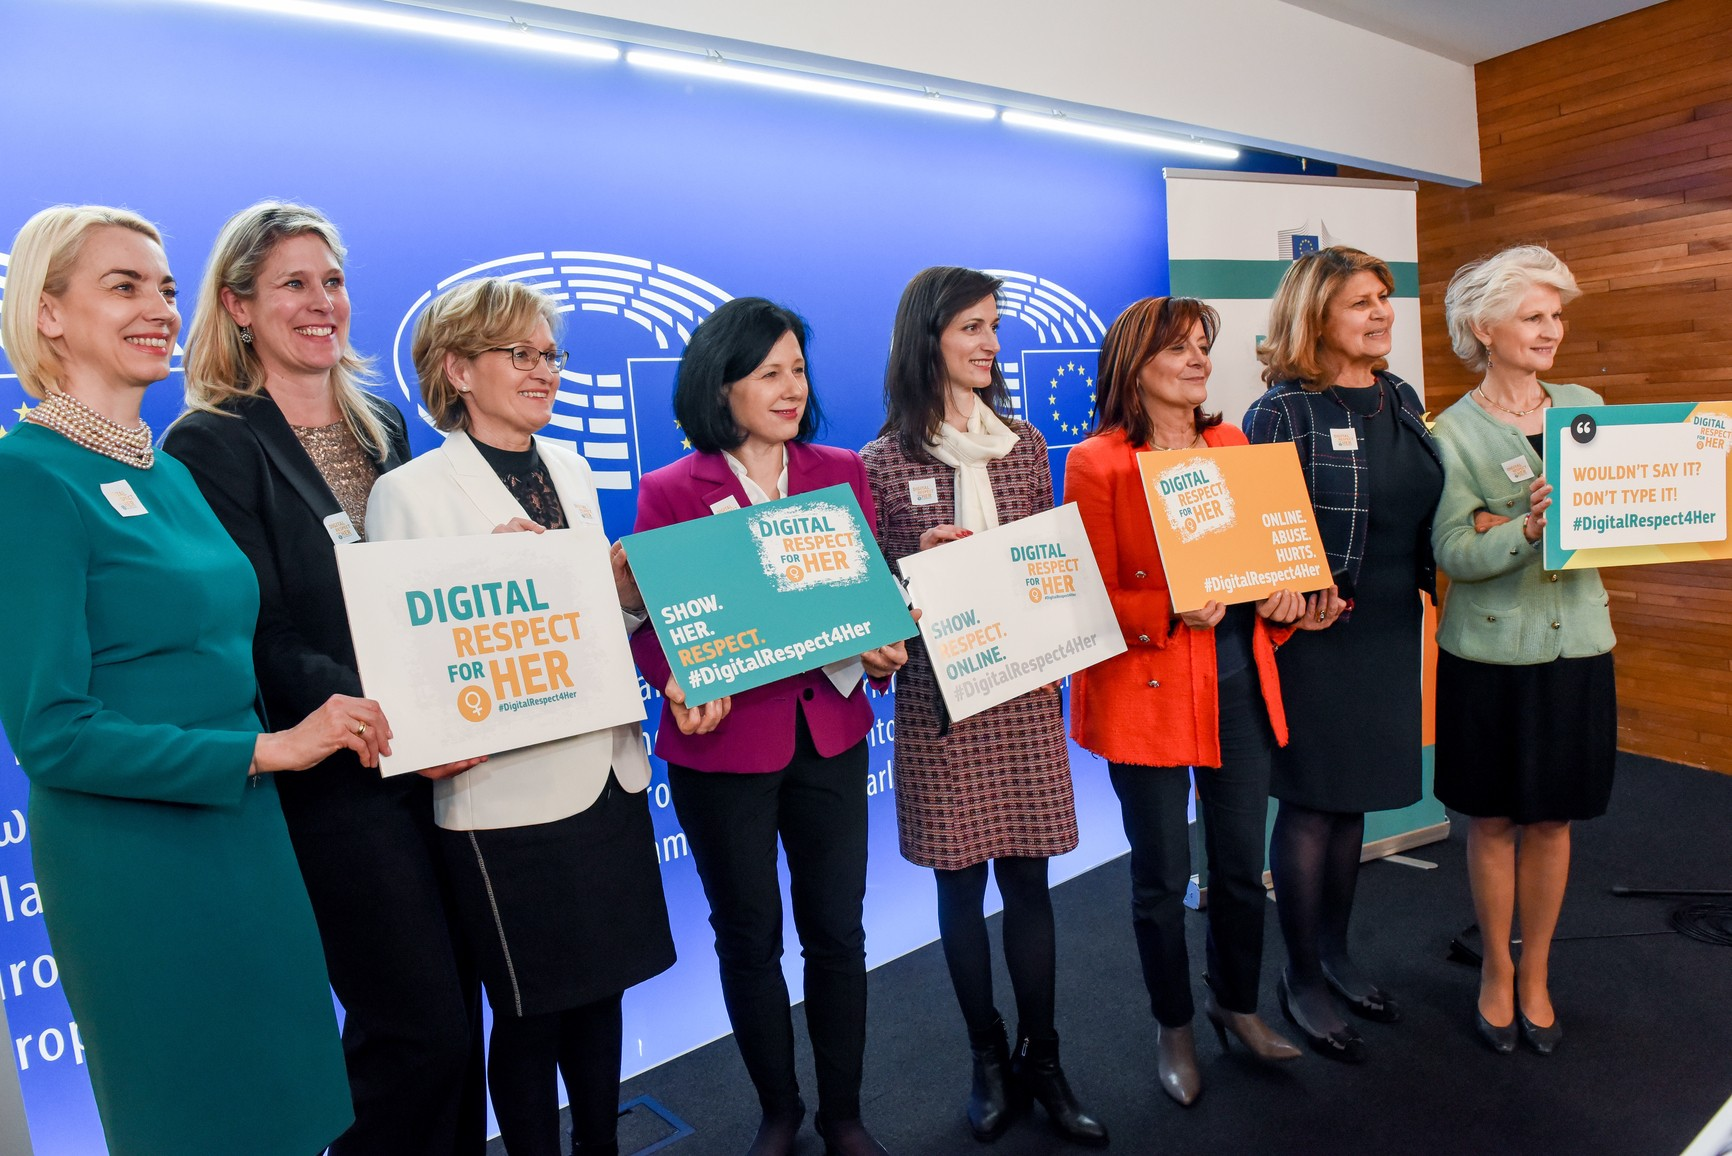 Launch of the #DigitalRespect4Her Campaign